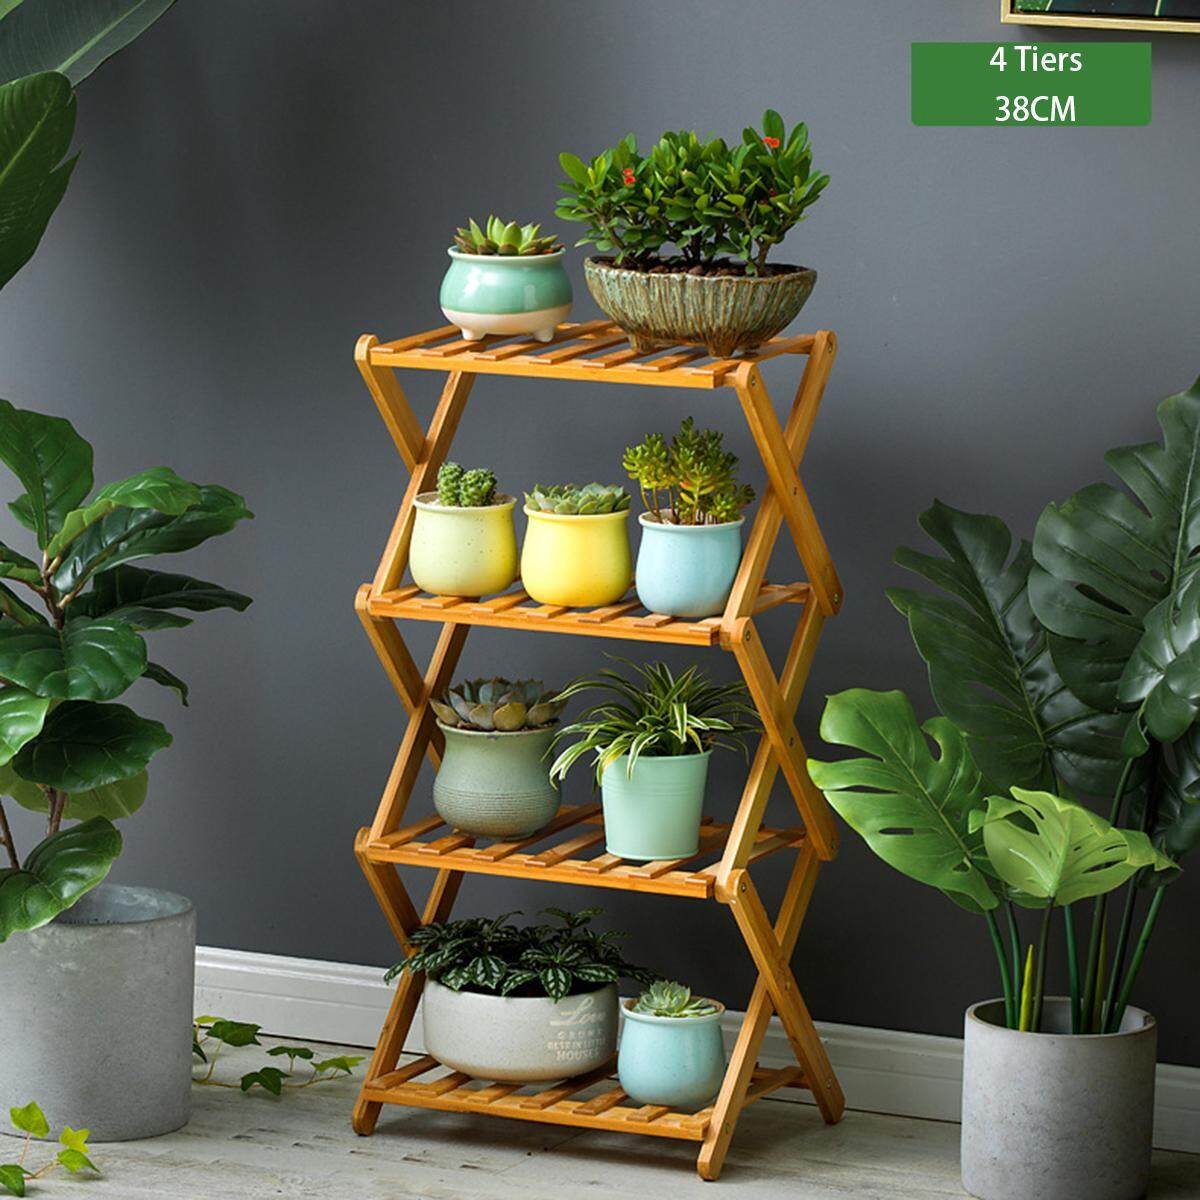 Mu Ma Ren 4 Tiers 38CM Length Floor flower shelf solid bamboo wood indoor multi-layer folding flower stand Renting/Decoration